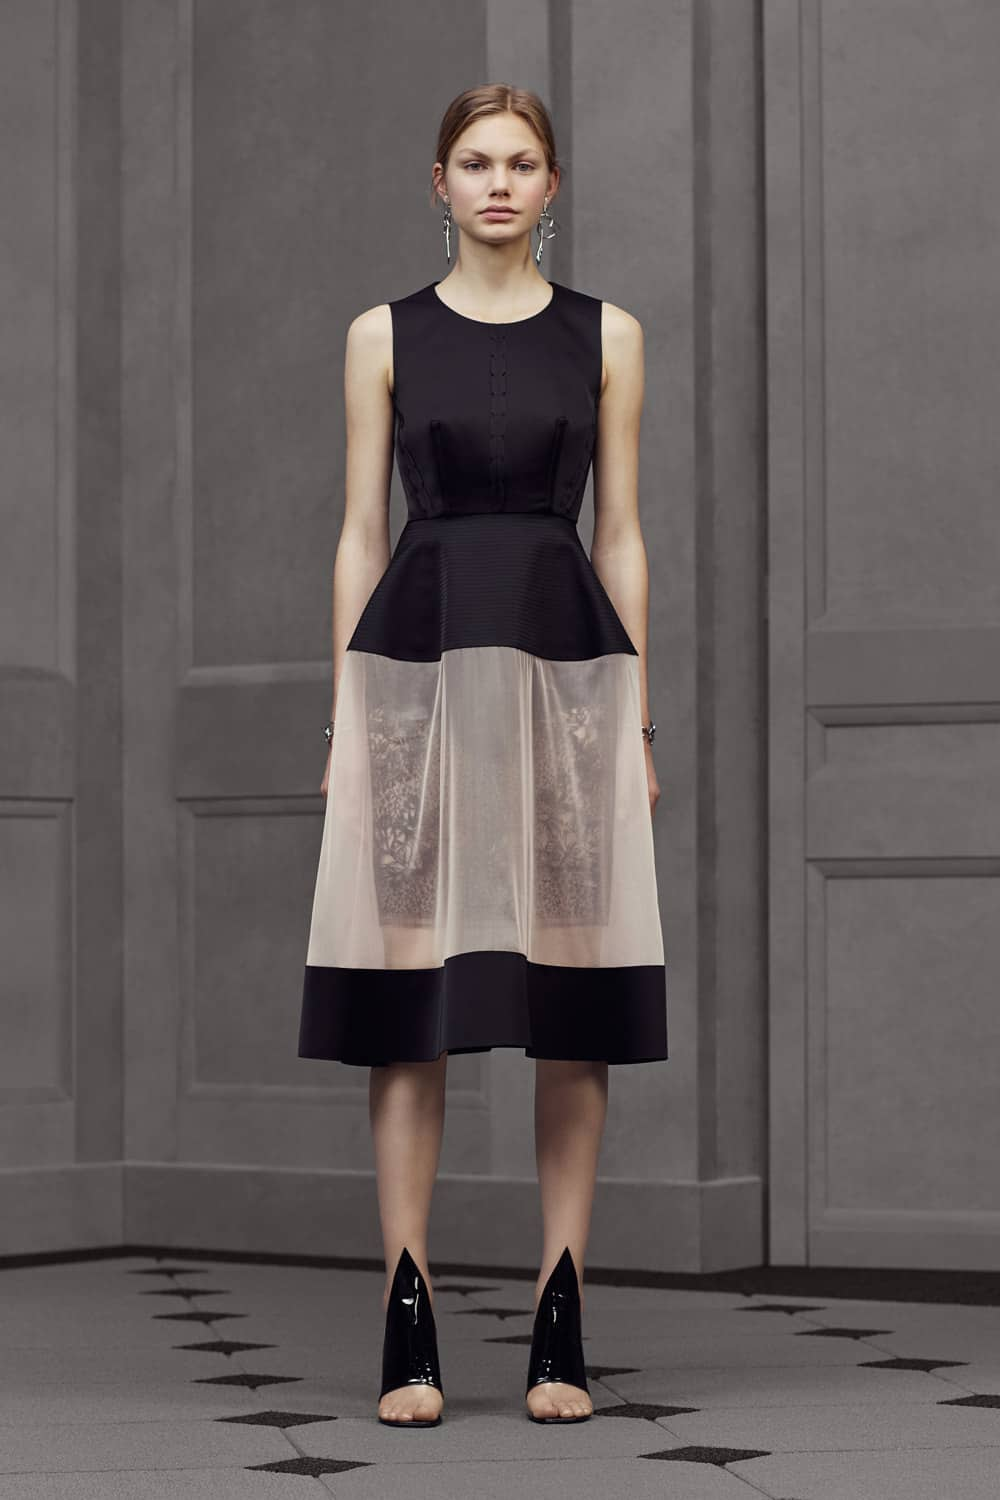 Balenciaga Resort 2016 Collection Featuring Peplum And